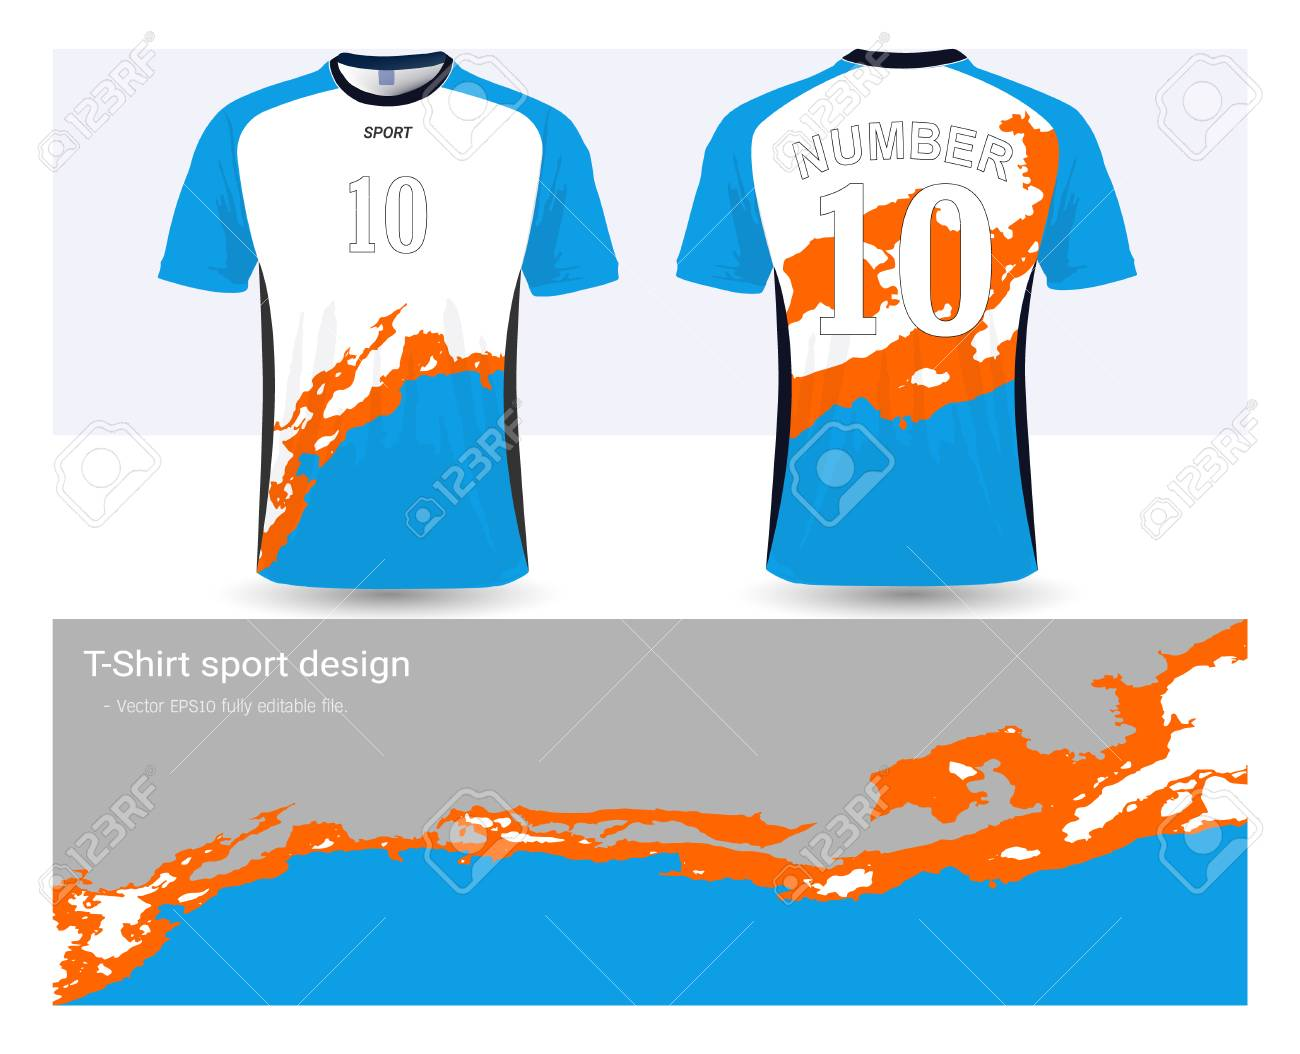 242f418ae Soccer jersey and t-shirt sports design template, front and back for  football club